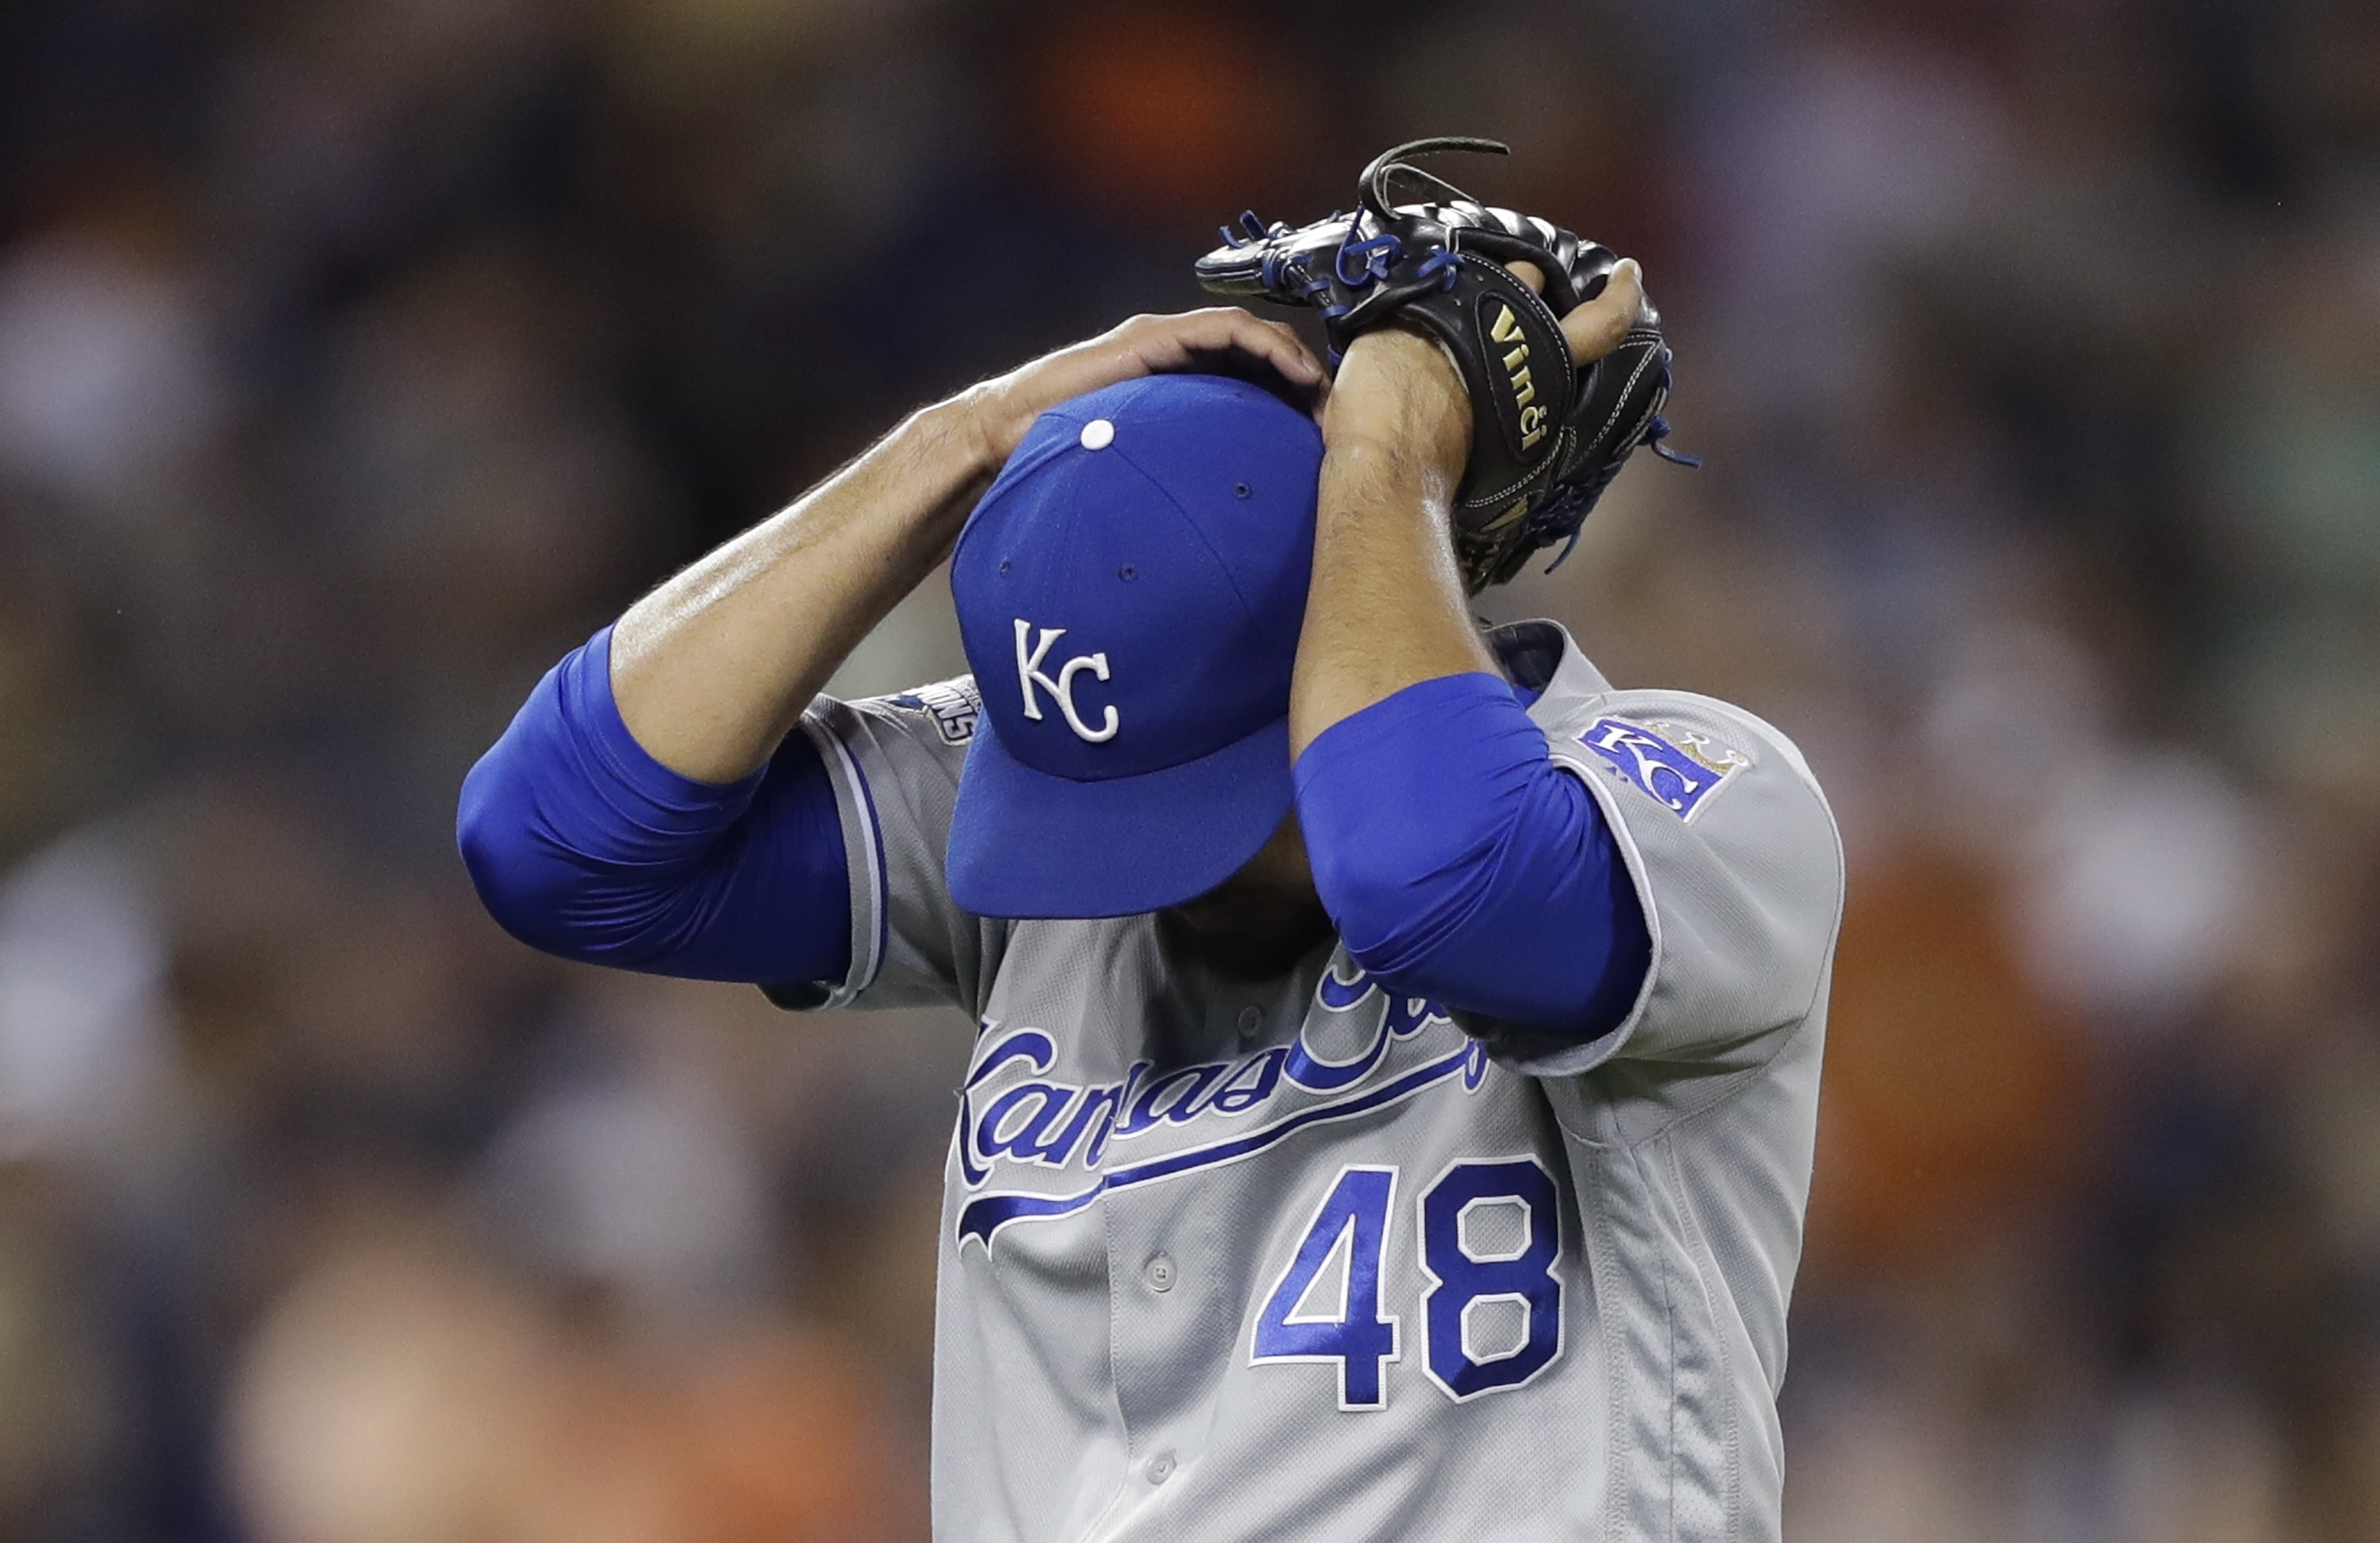 Kansas City Royals relief pitcher Joakim Soria reacts as he walks to the dugout after giving up a two-run single to Detroit Tigers designated hitter Victor Martinez (41) during the seventh inning of a baseball game, Friday, July 15, 2016 in Detroit. (AP P